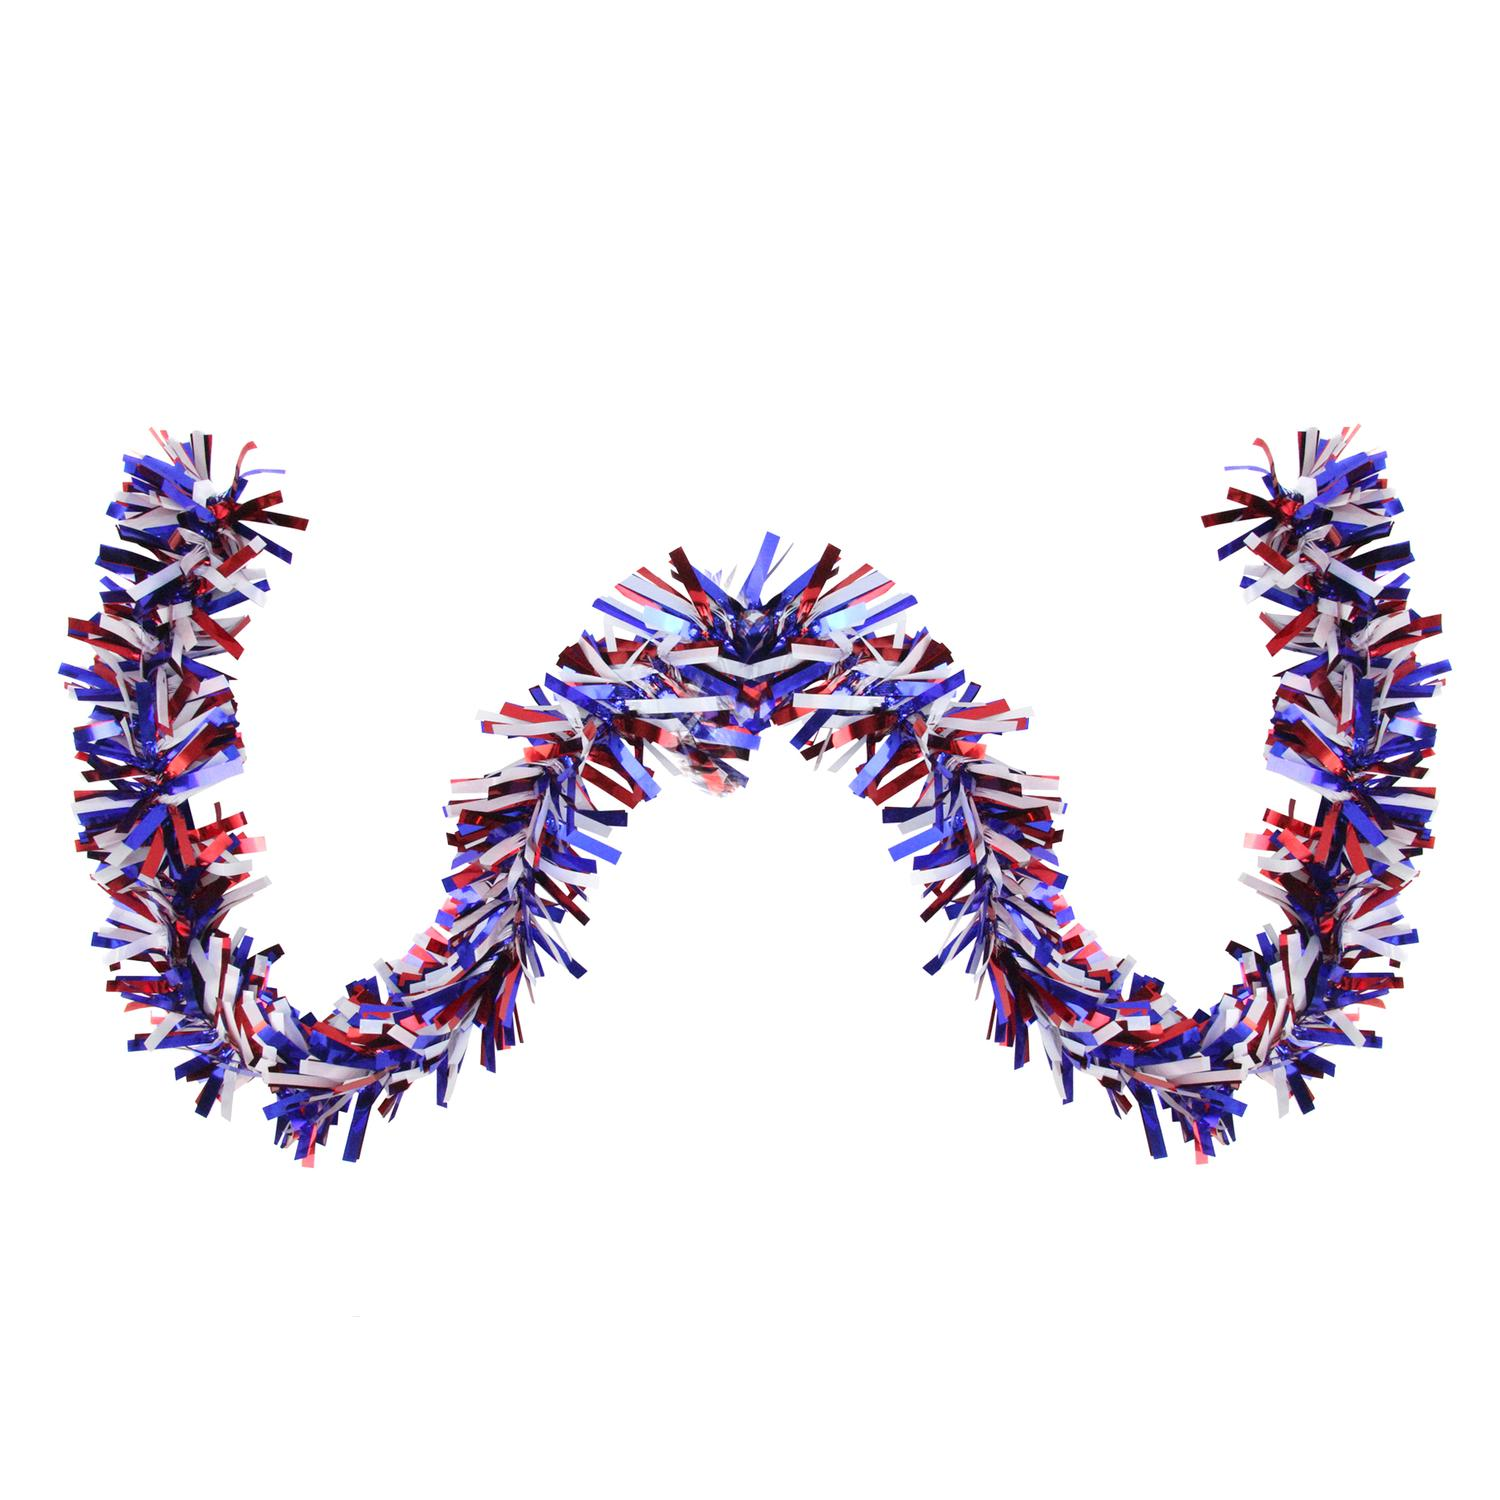 25' Red, White and Blue Wide Cut Tinsel 4th of the July Garland - Unlit